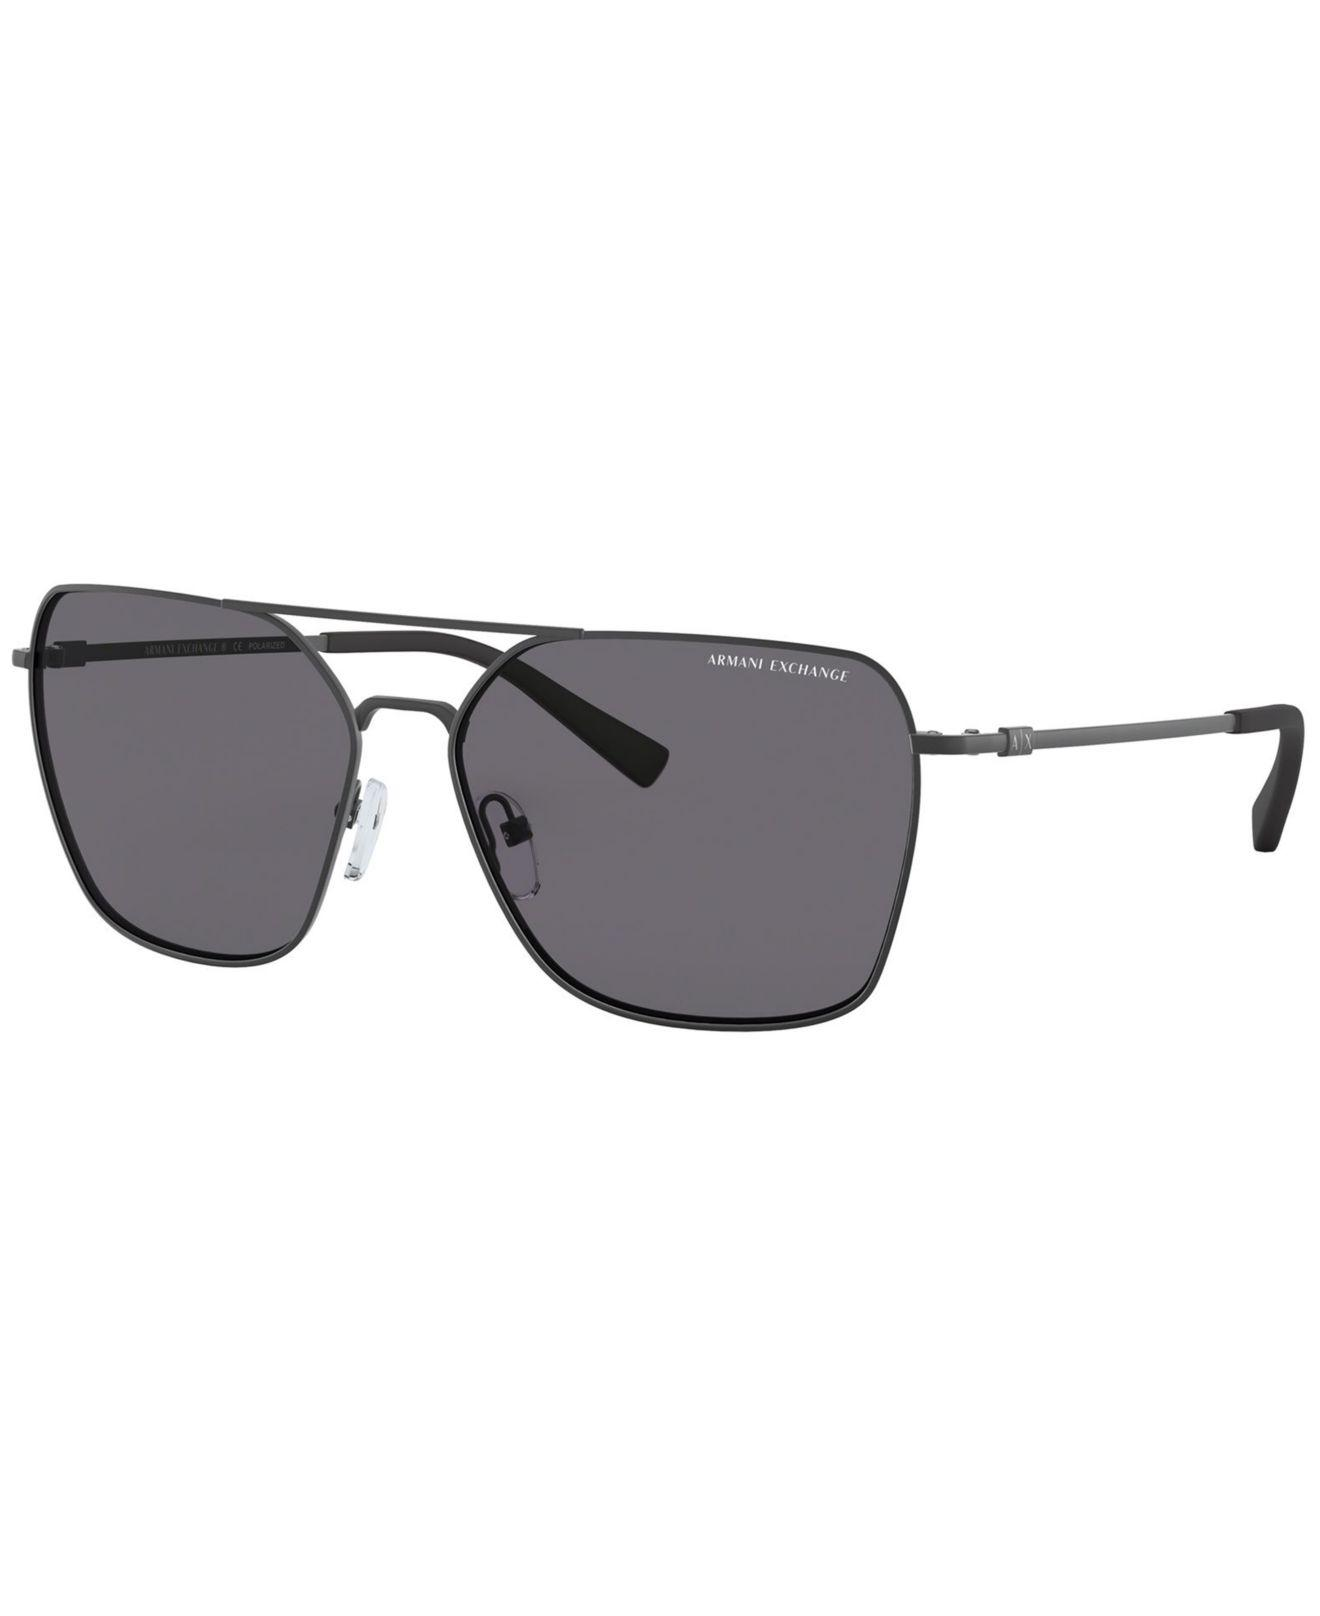 aae1510e46b Lyst - Armani Exchange Polarized Sunglasses